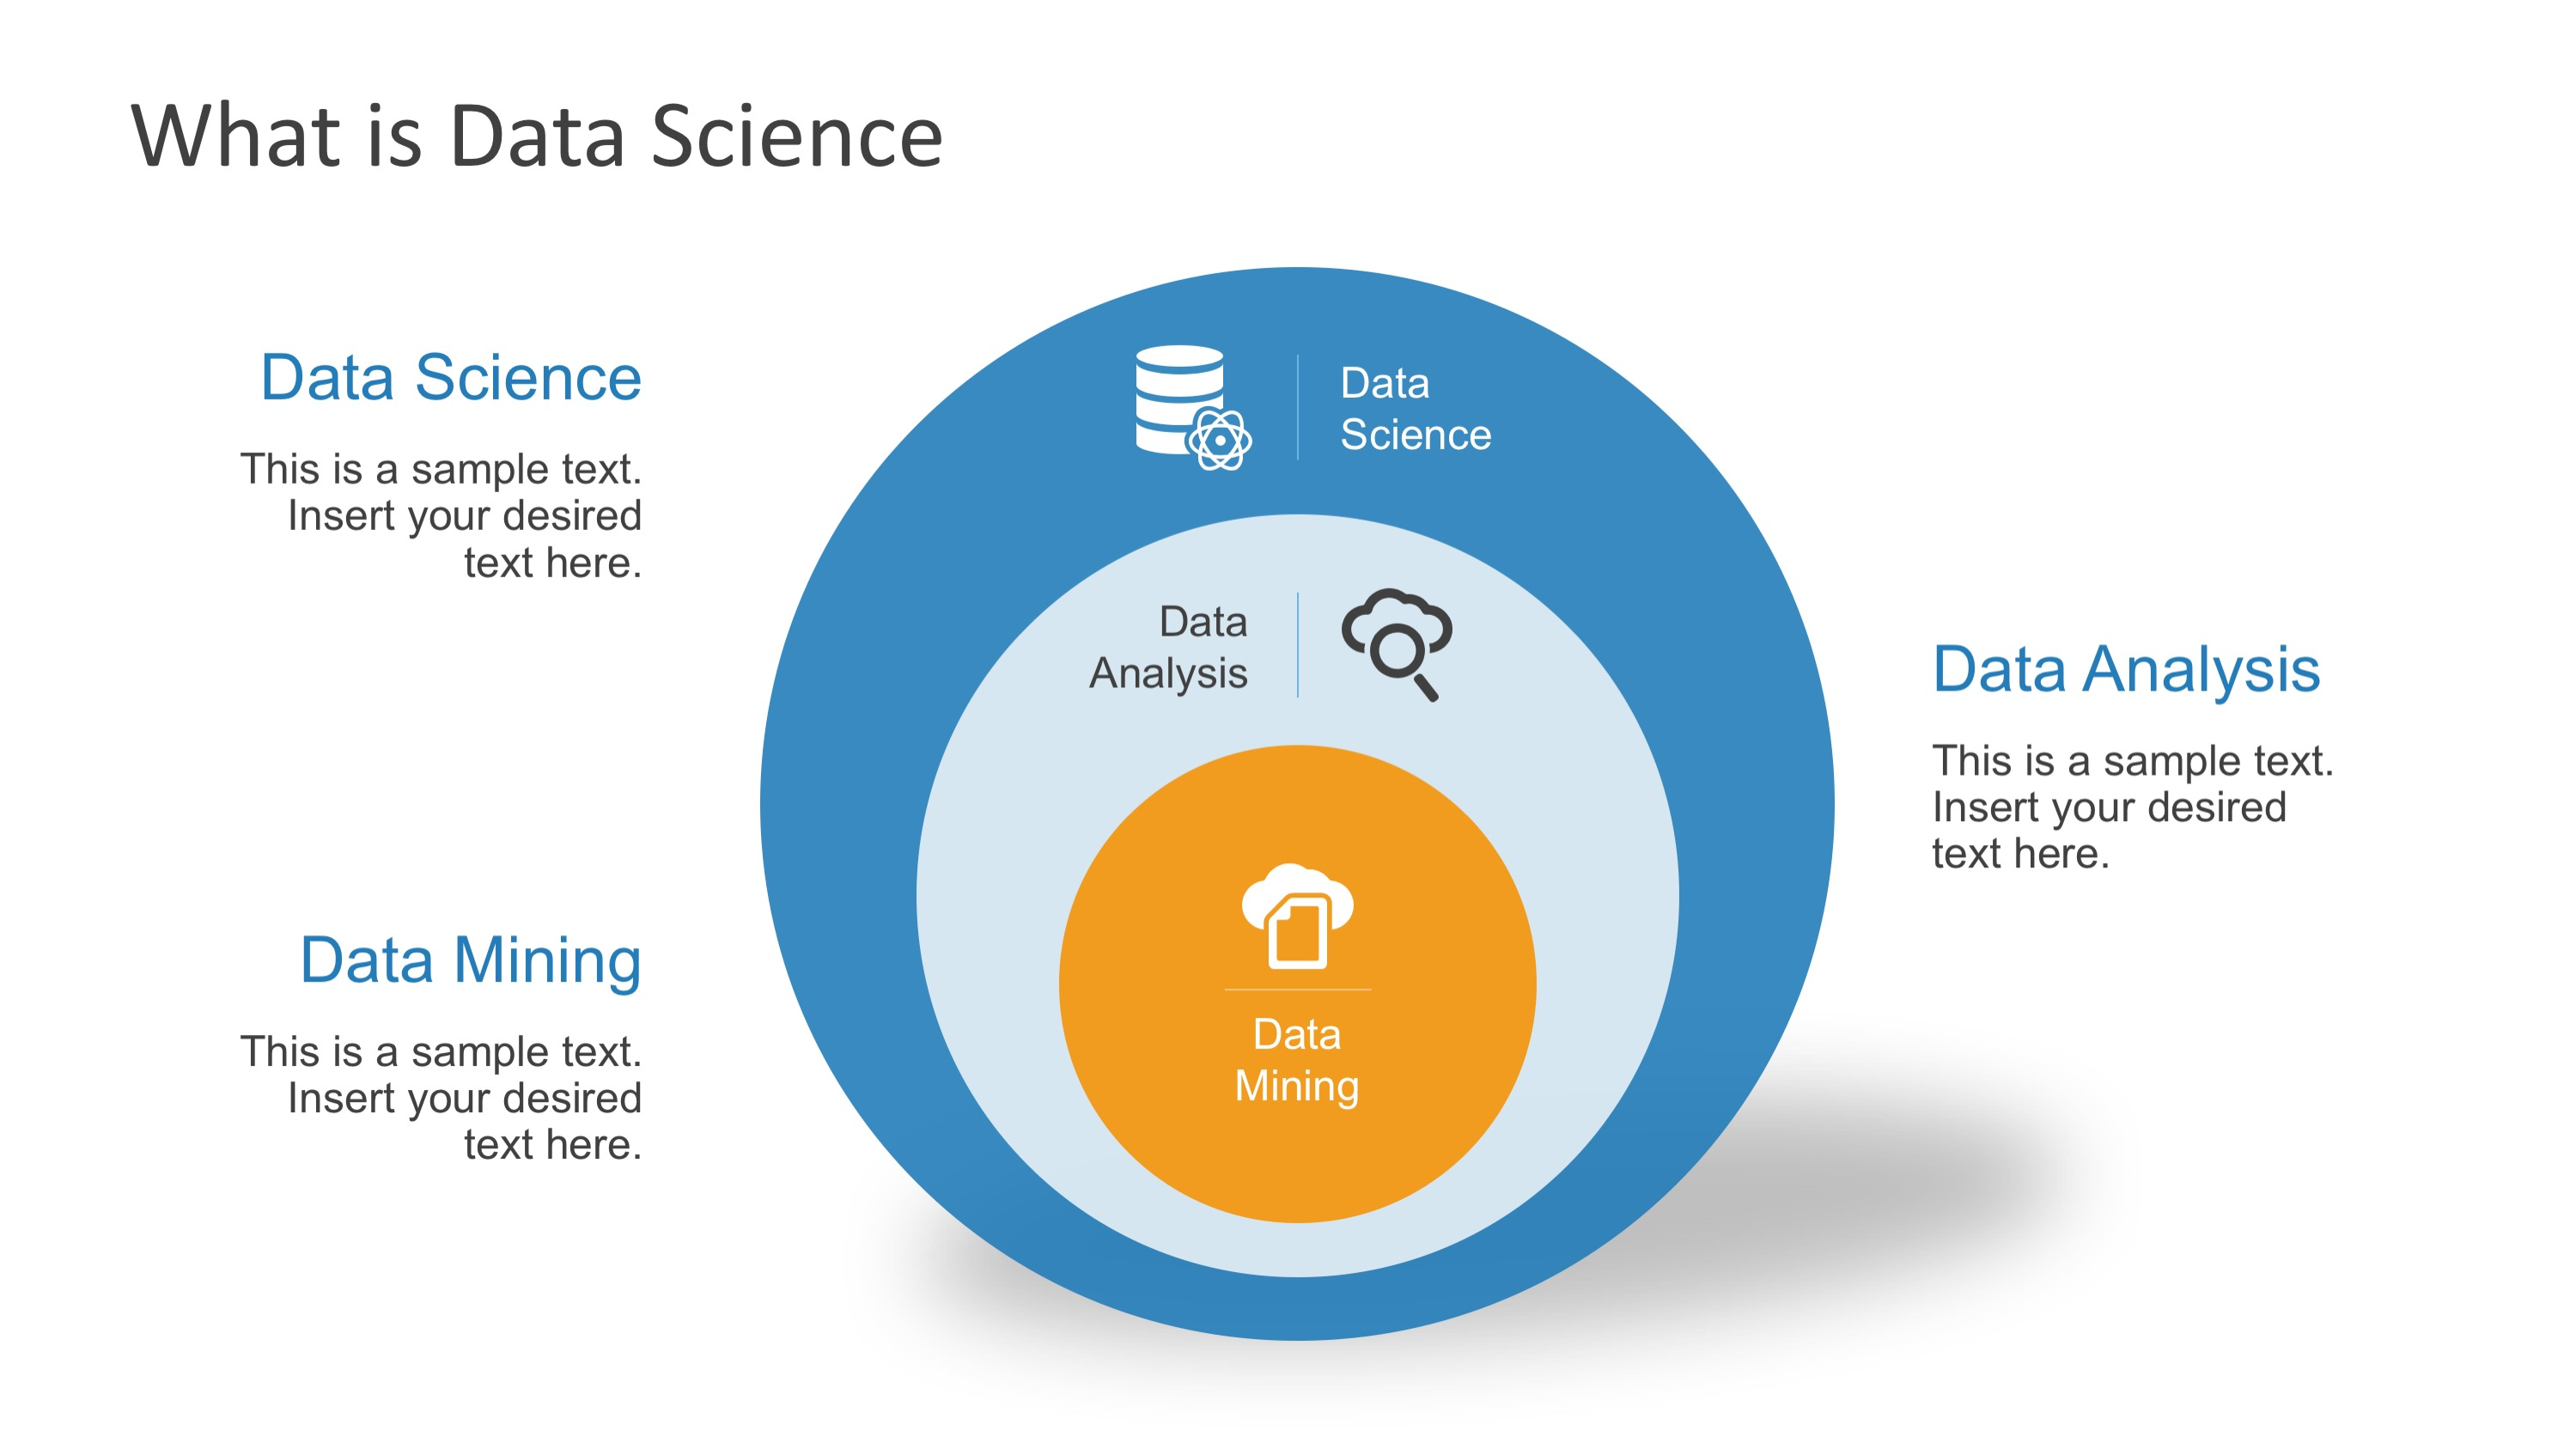 Data science shapes powerpoint template slidemodel ppt template data science data science ppt template ppt templates venn diagram pooptronica Choice Image